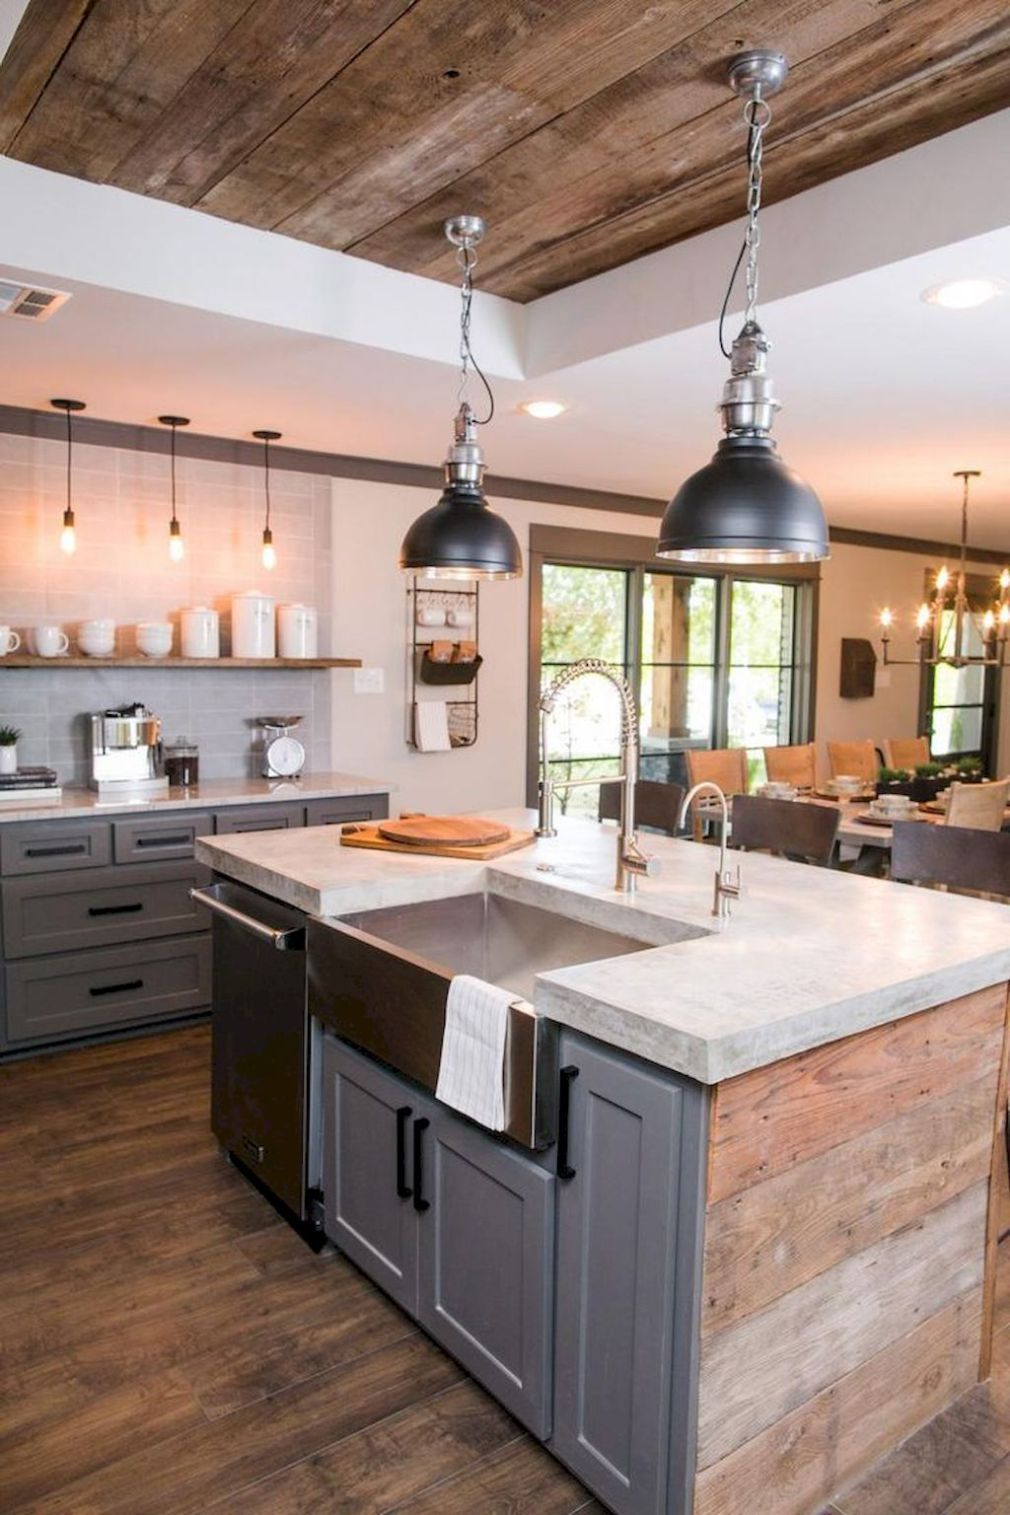 Rustic wooden kitchen islands design ideas 53